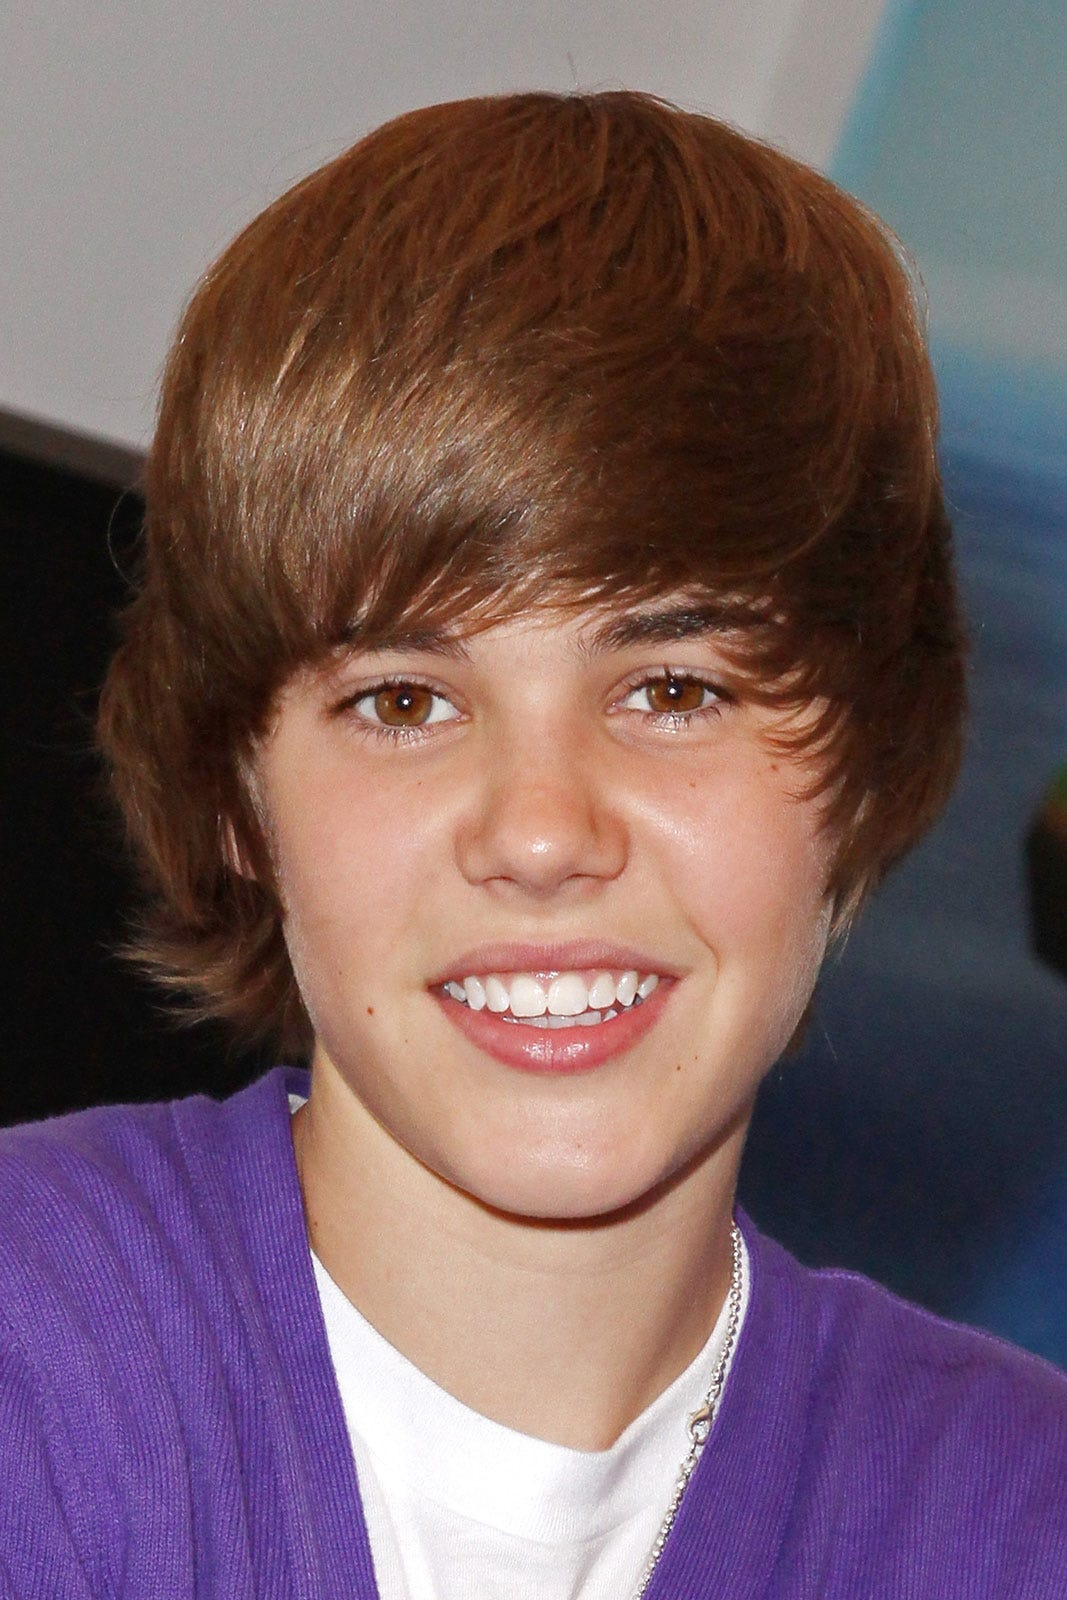 Justin Bieber Old Haircut : justin, bieber, haircut, Bieber, Evolution, Looks, Years